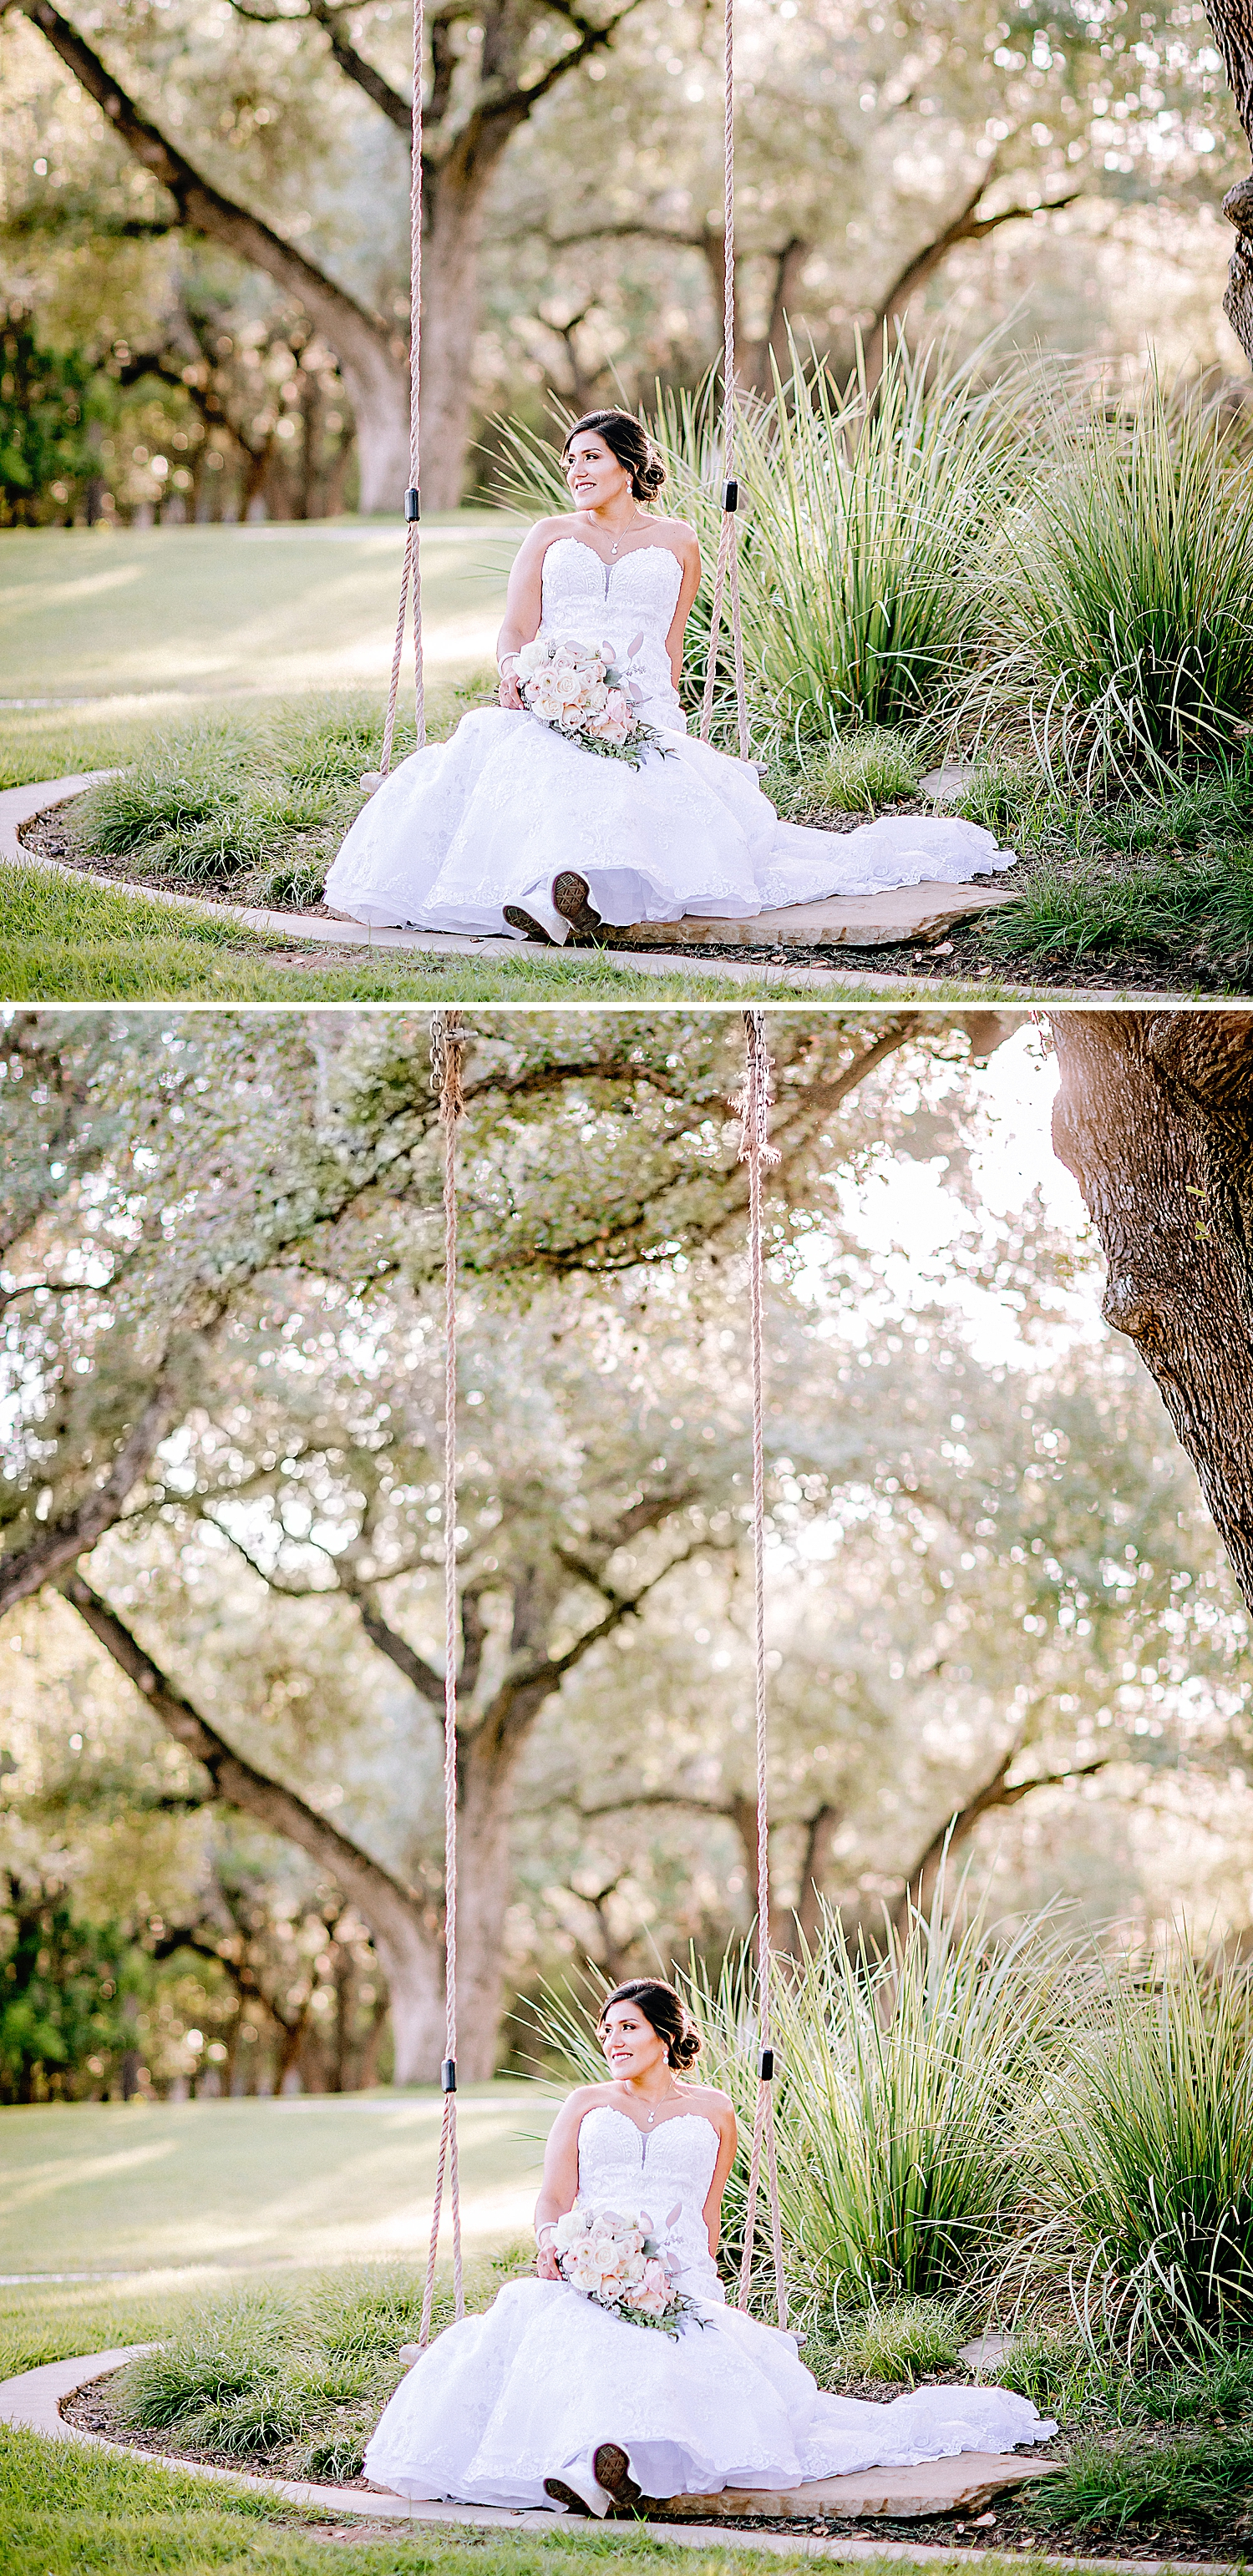 Carly-Barton-Photography-Bridal-Photos-Chadelier-of-Gruene-New-Braunfels-Wedding-Photographer_0011.jpg